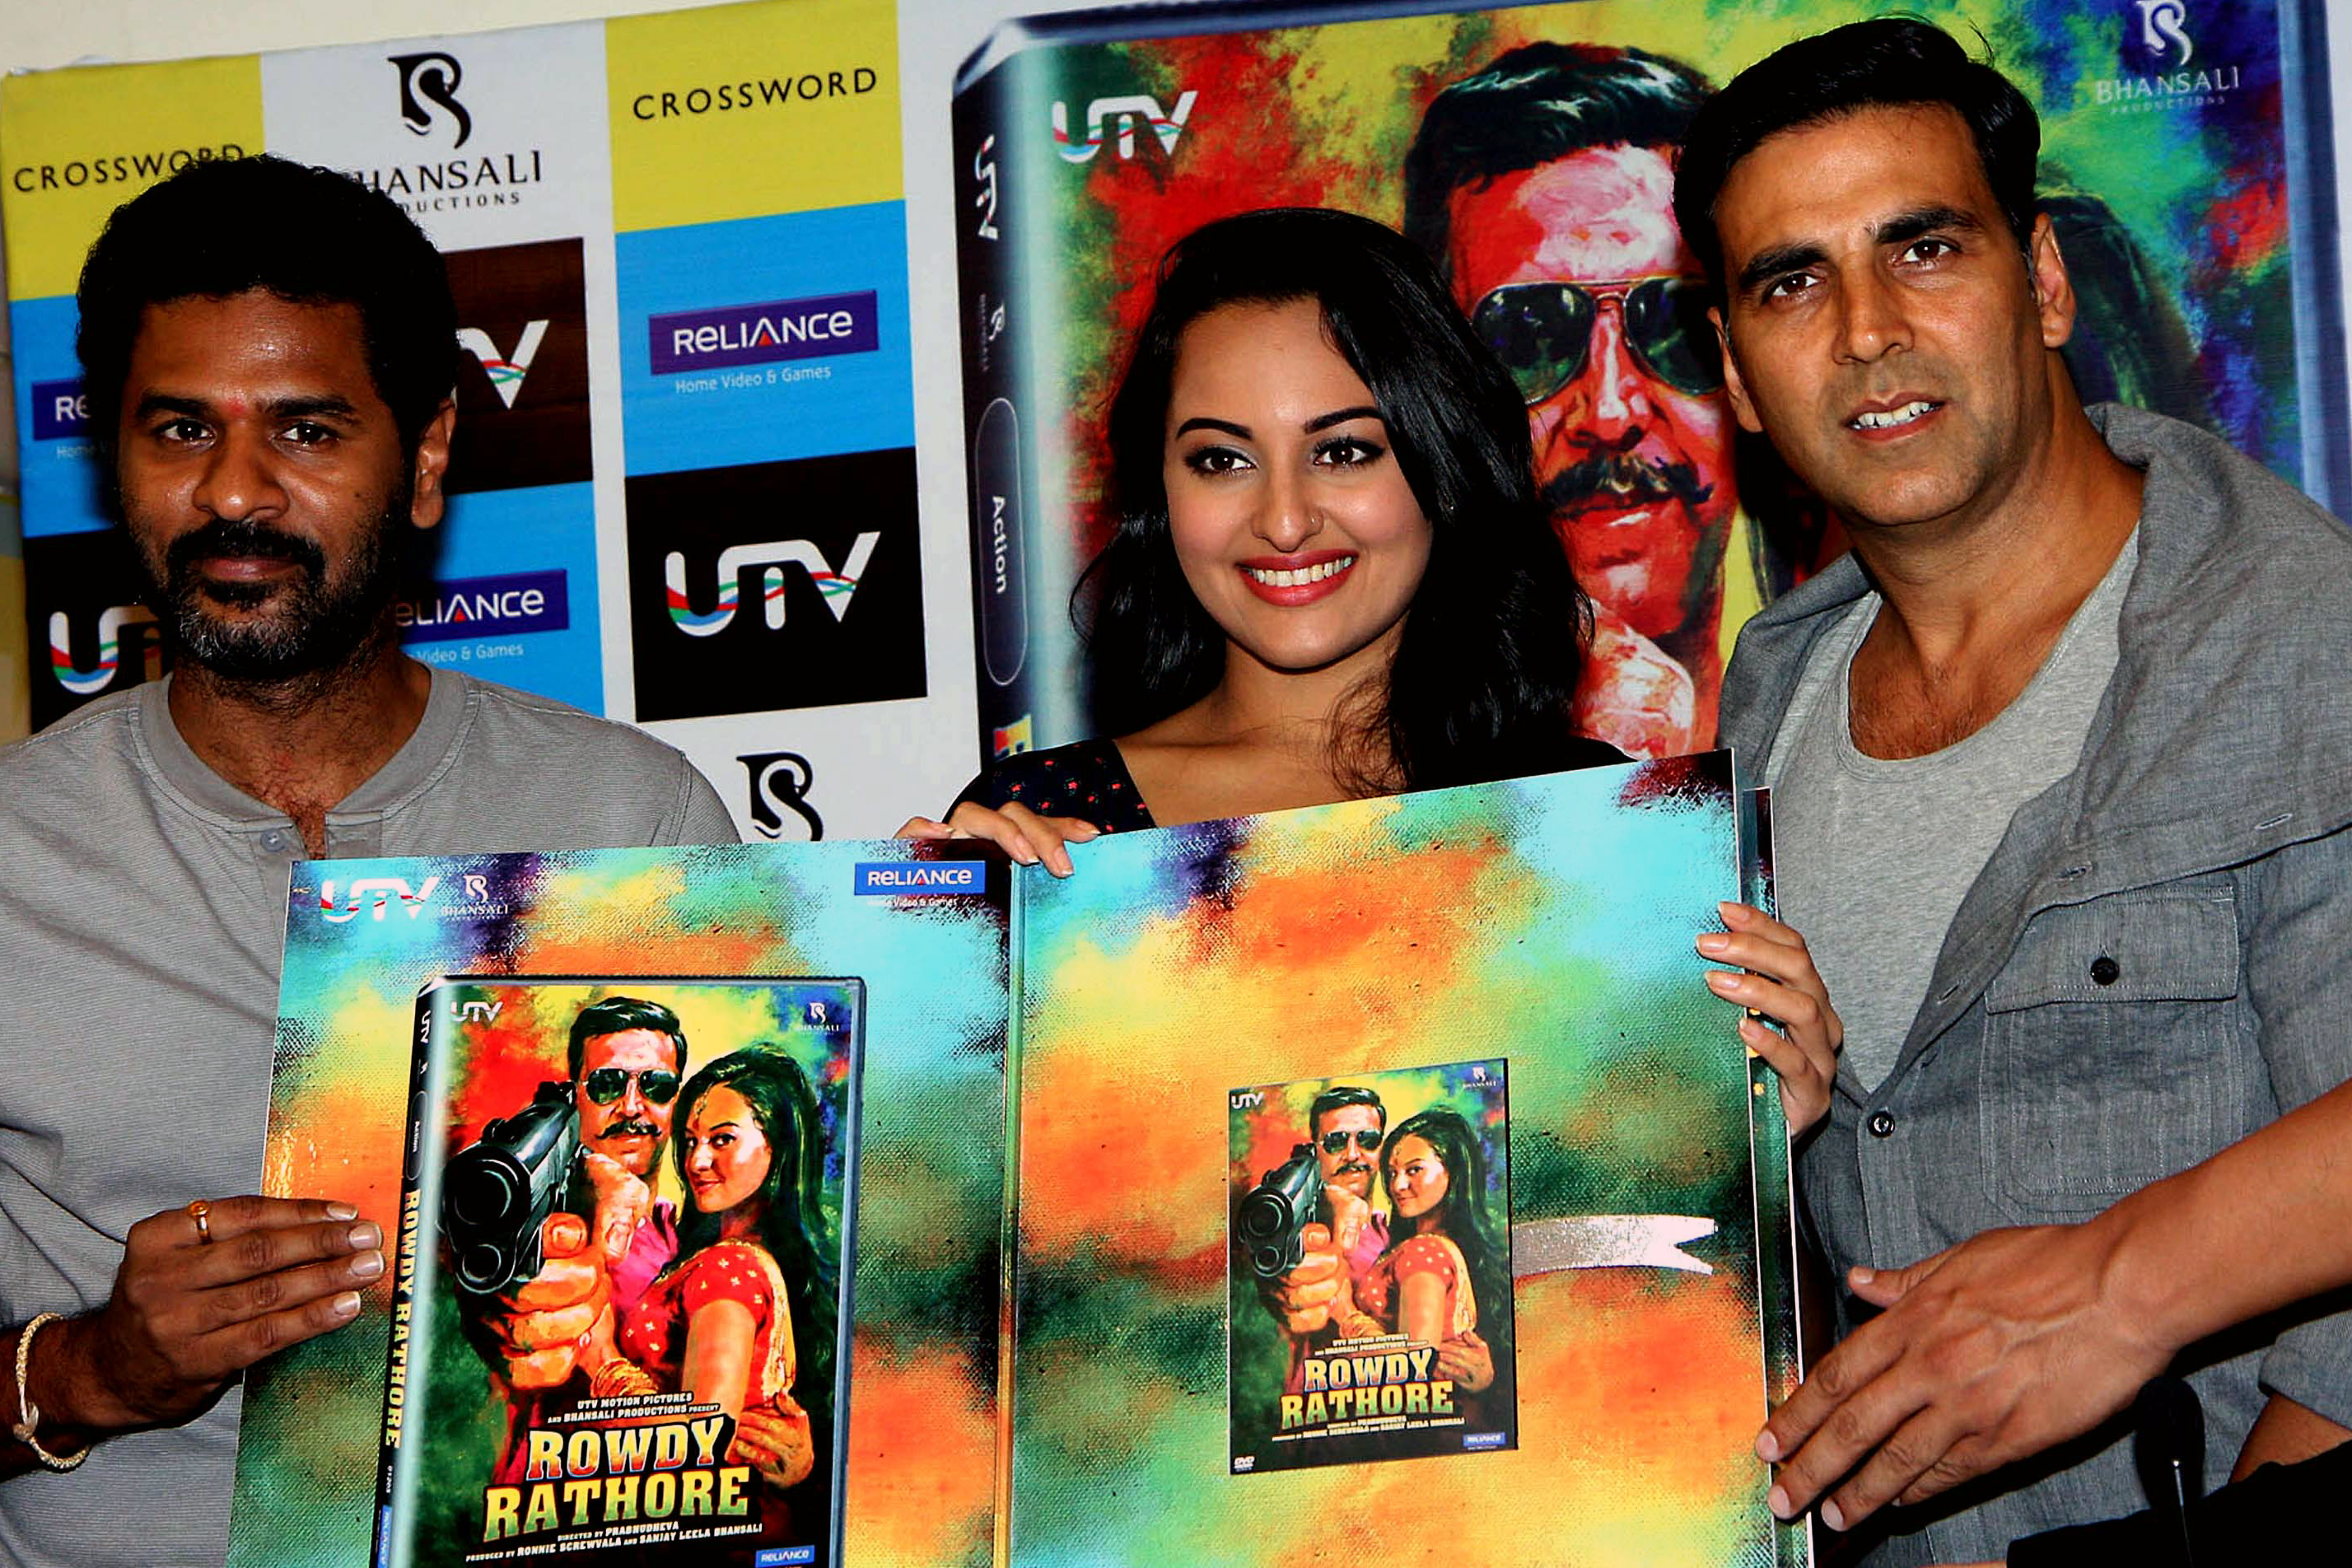 Prabhu Deva, Akshay Kumar, and Sonakshi Sinha at an event for Rowdy Rathore (2012)